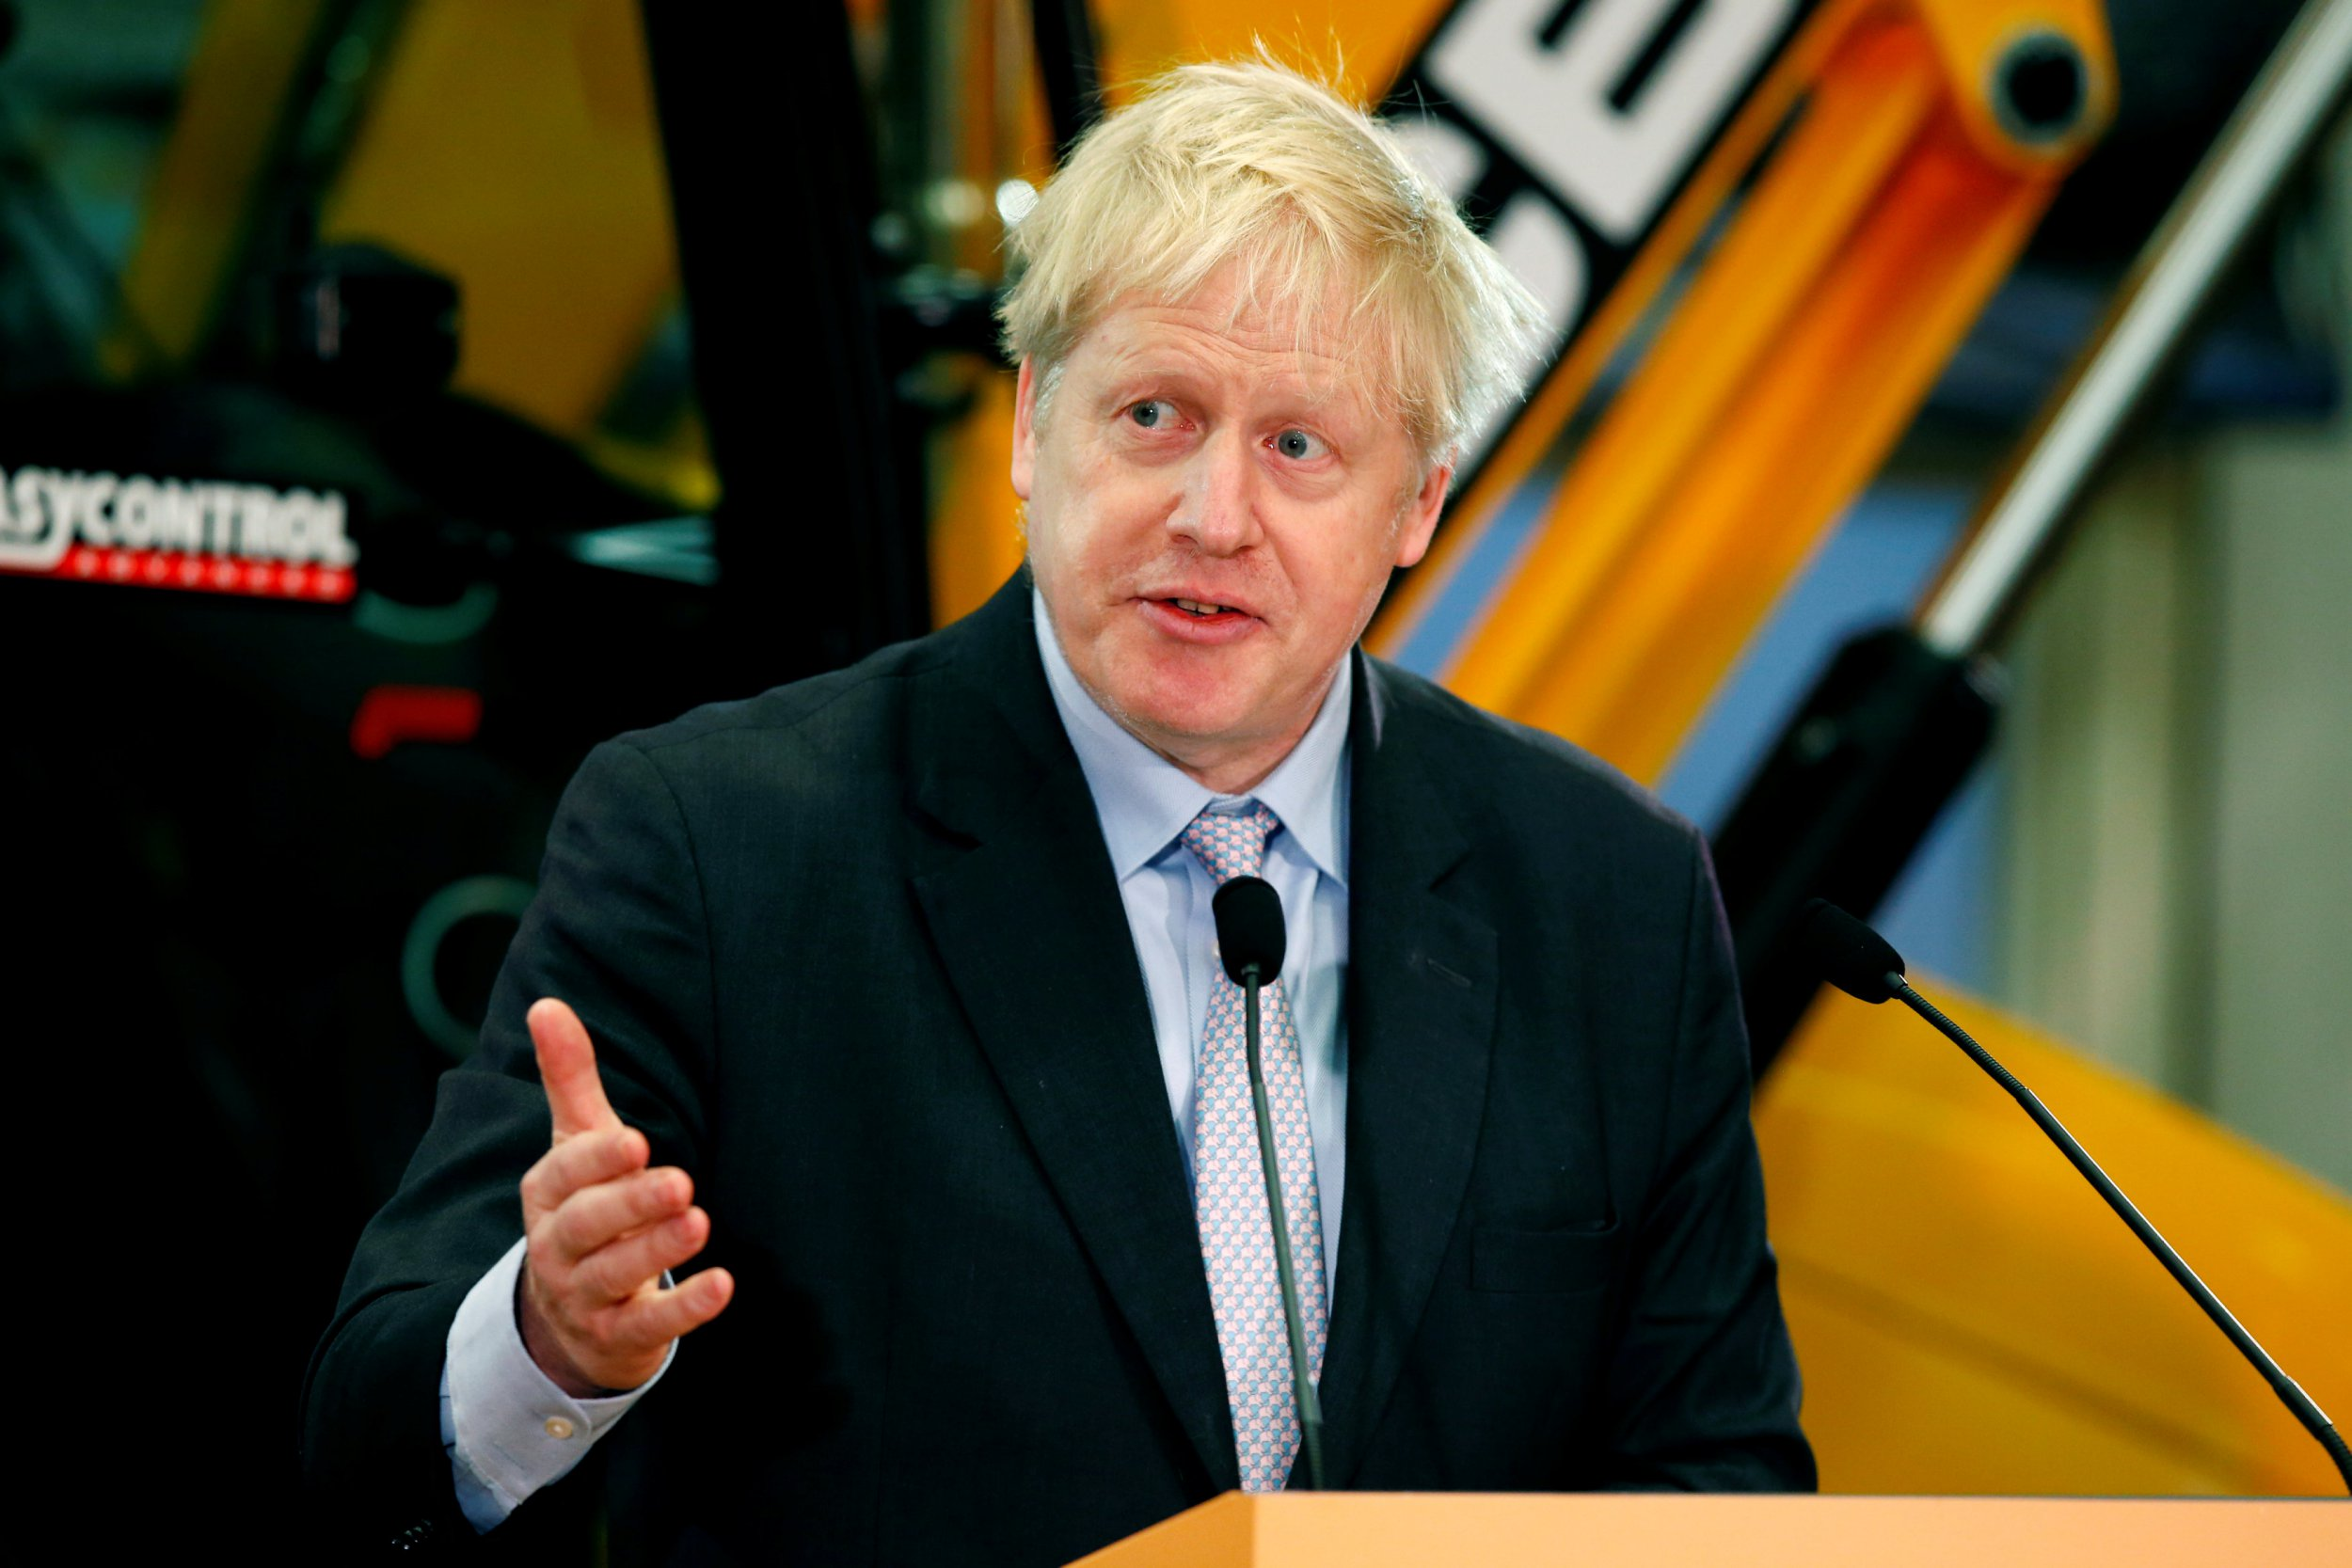 Former British Foreign Secretary Boris Johnson gives a speech at the JCB Headquarters in Rocester, Staffordshire, Britain, January 18, 2019. REUTERS/Andrew Yates